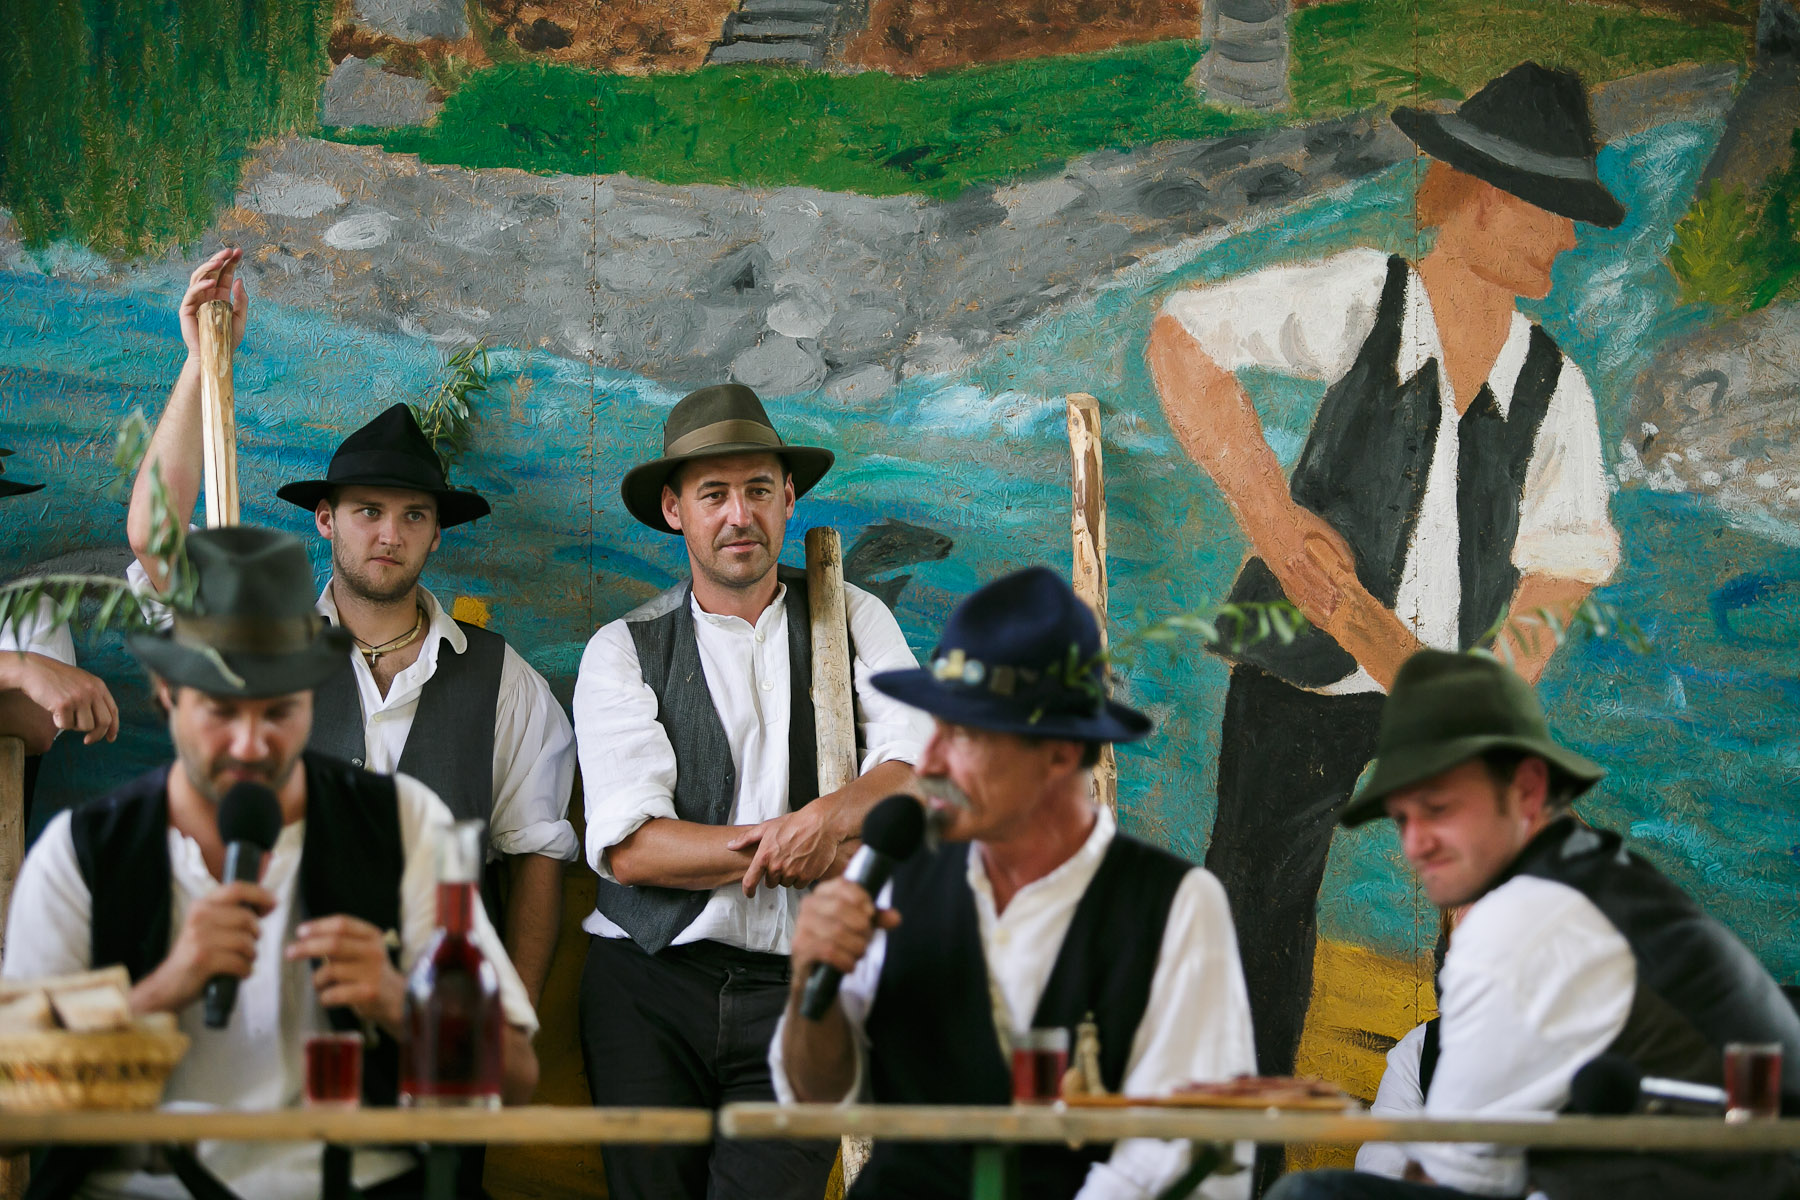 Raftsmen participate in a baptism of a new raftman during the 55th Raftsmen Ball in Ljubno ob Savinji, Slovenia.